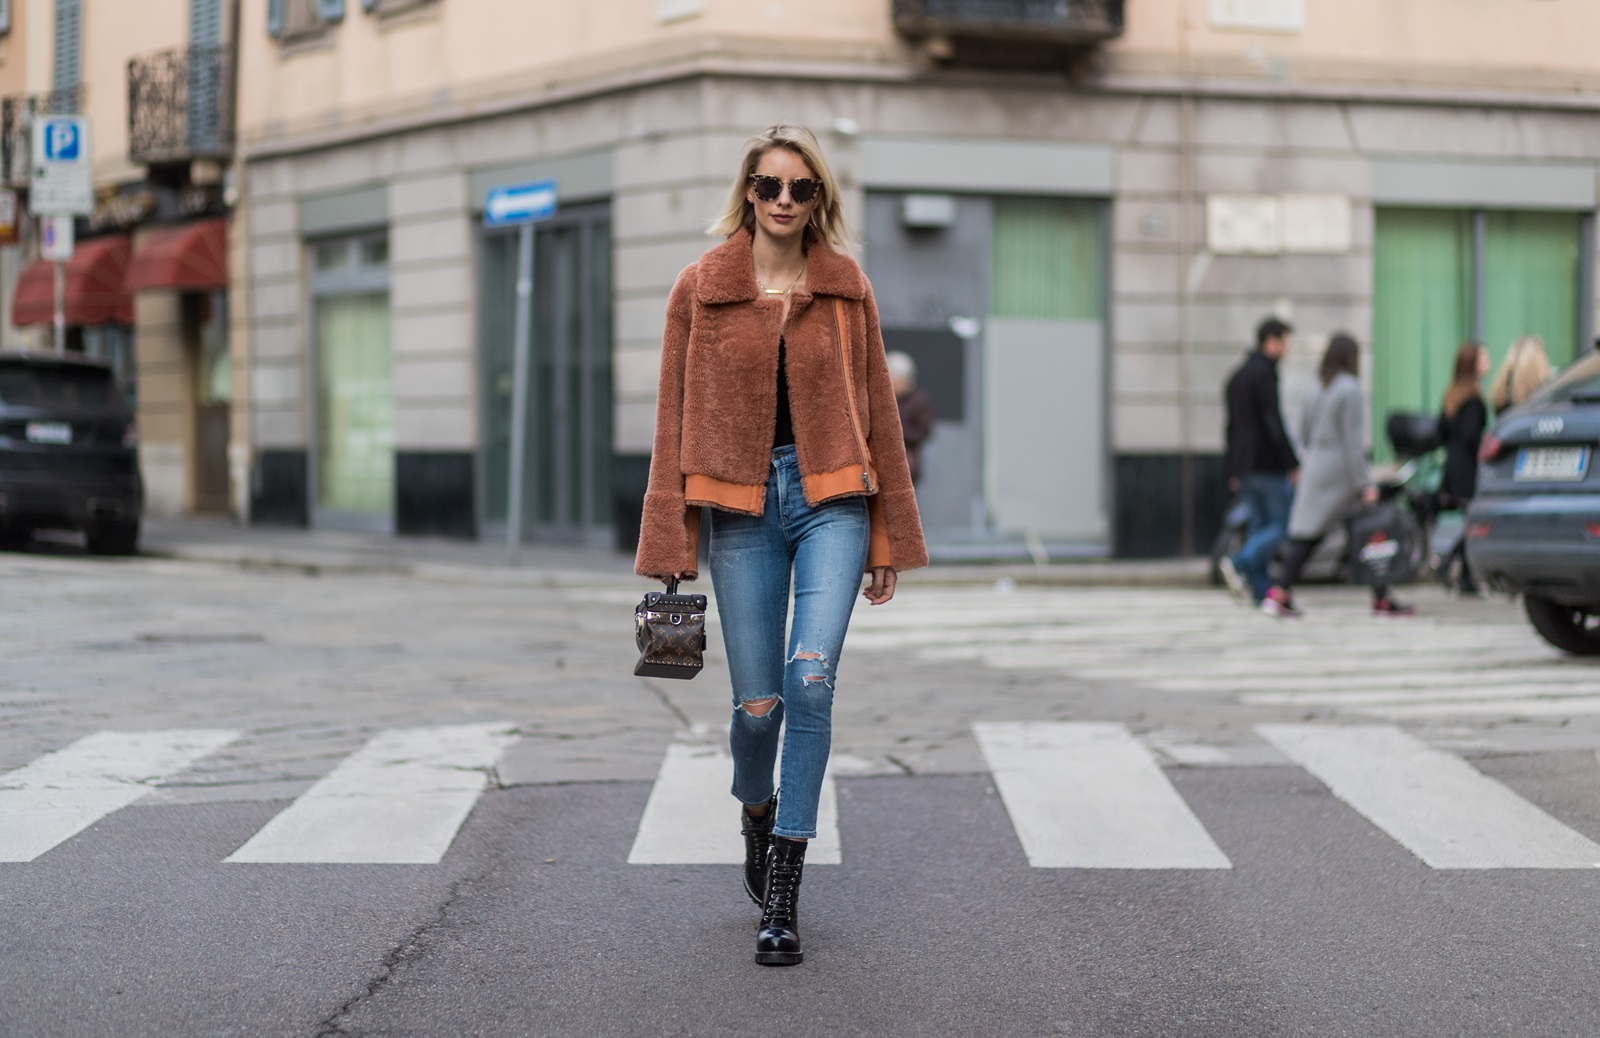 MILAN, ITALY - FEBRUARY 26: Lisa Hahnbueck wearing Designers Remix CANDY COAT BOXY SHEARLING COAT WITH LARGE COLLAR AND ZIPPER, CITIZENS OF HUMANITY JEANS, Louis Vuitton STAR TRAIL ANKLE BOOT, Louis Vuitton SUPPLE RIGID BAG IN MONOGRAM CANVAS, Prada Sunglasses during Milan Fashion Week Fall/Winter 2017/18 on February 26, 2017 in Milan, Italy. (Photo by Christian Vierig/Getty Images) *** Local Caption *** Lisa Hahnbueck